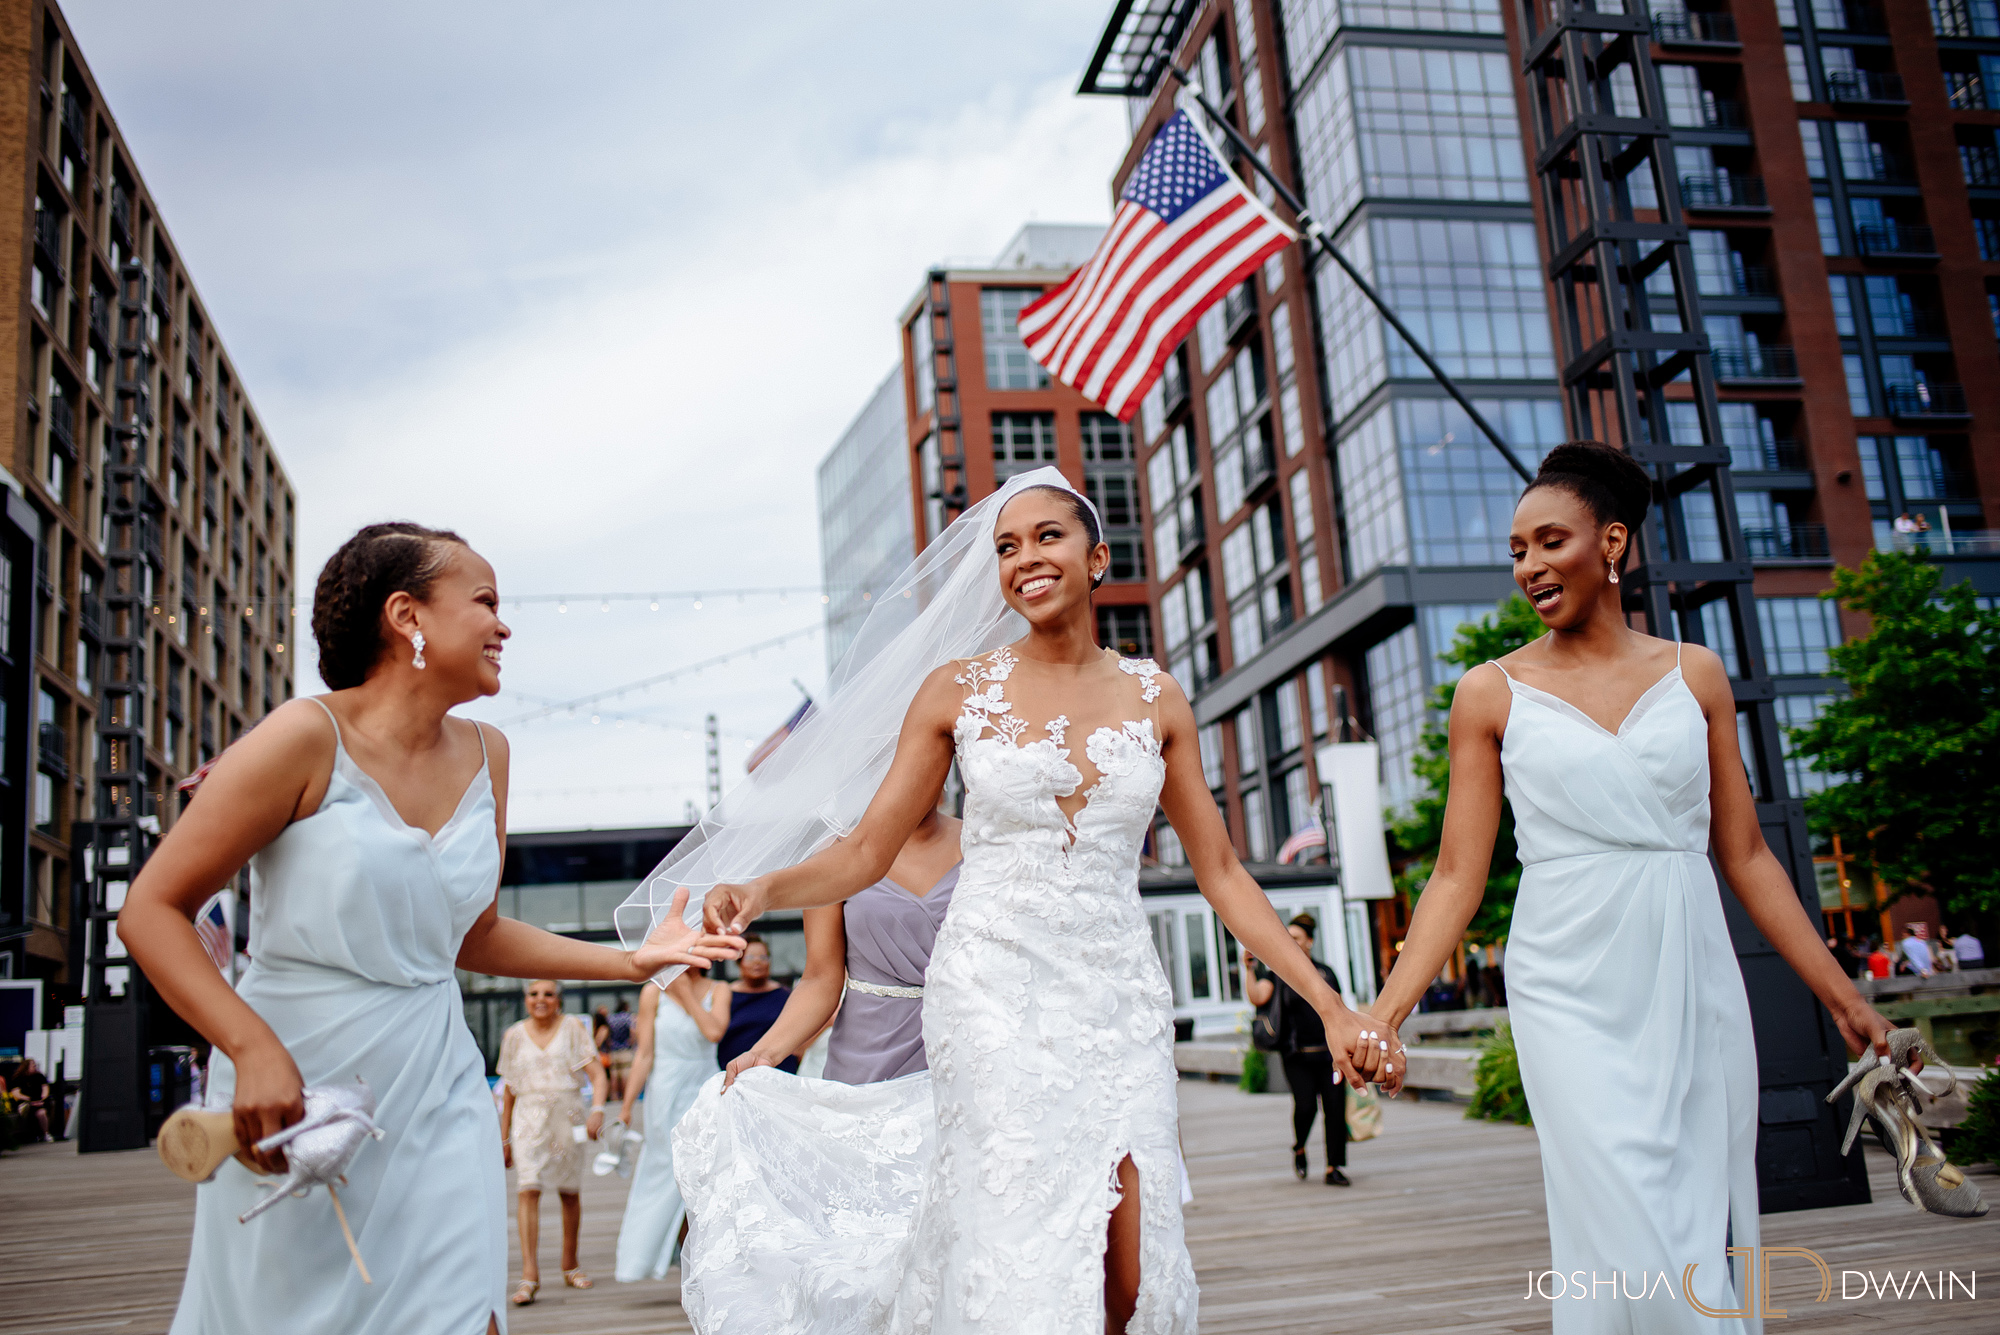 leshia-adam-015-dc-wharf-wedding-photos-joshua-dwain-photographer